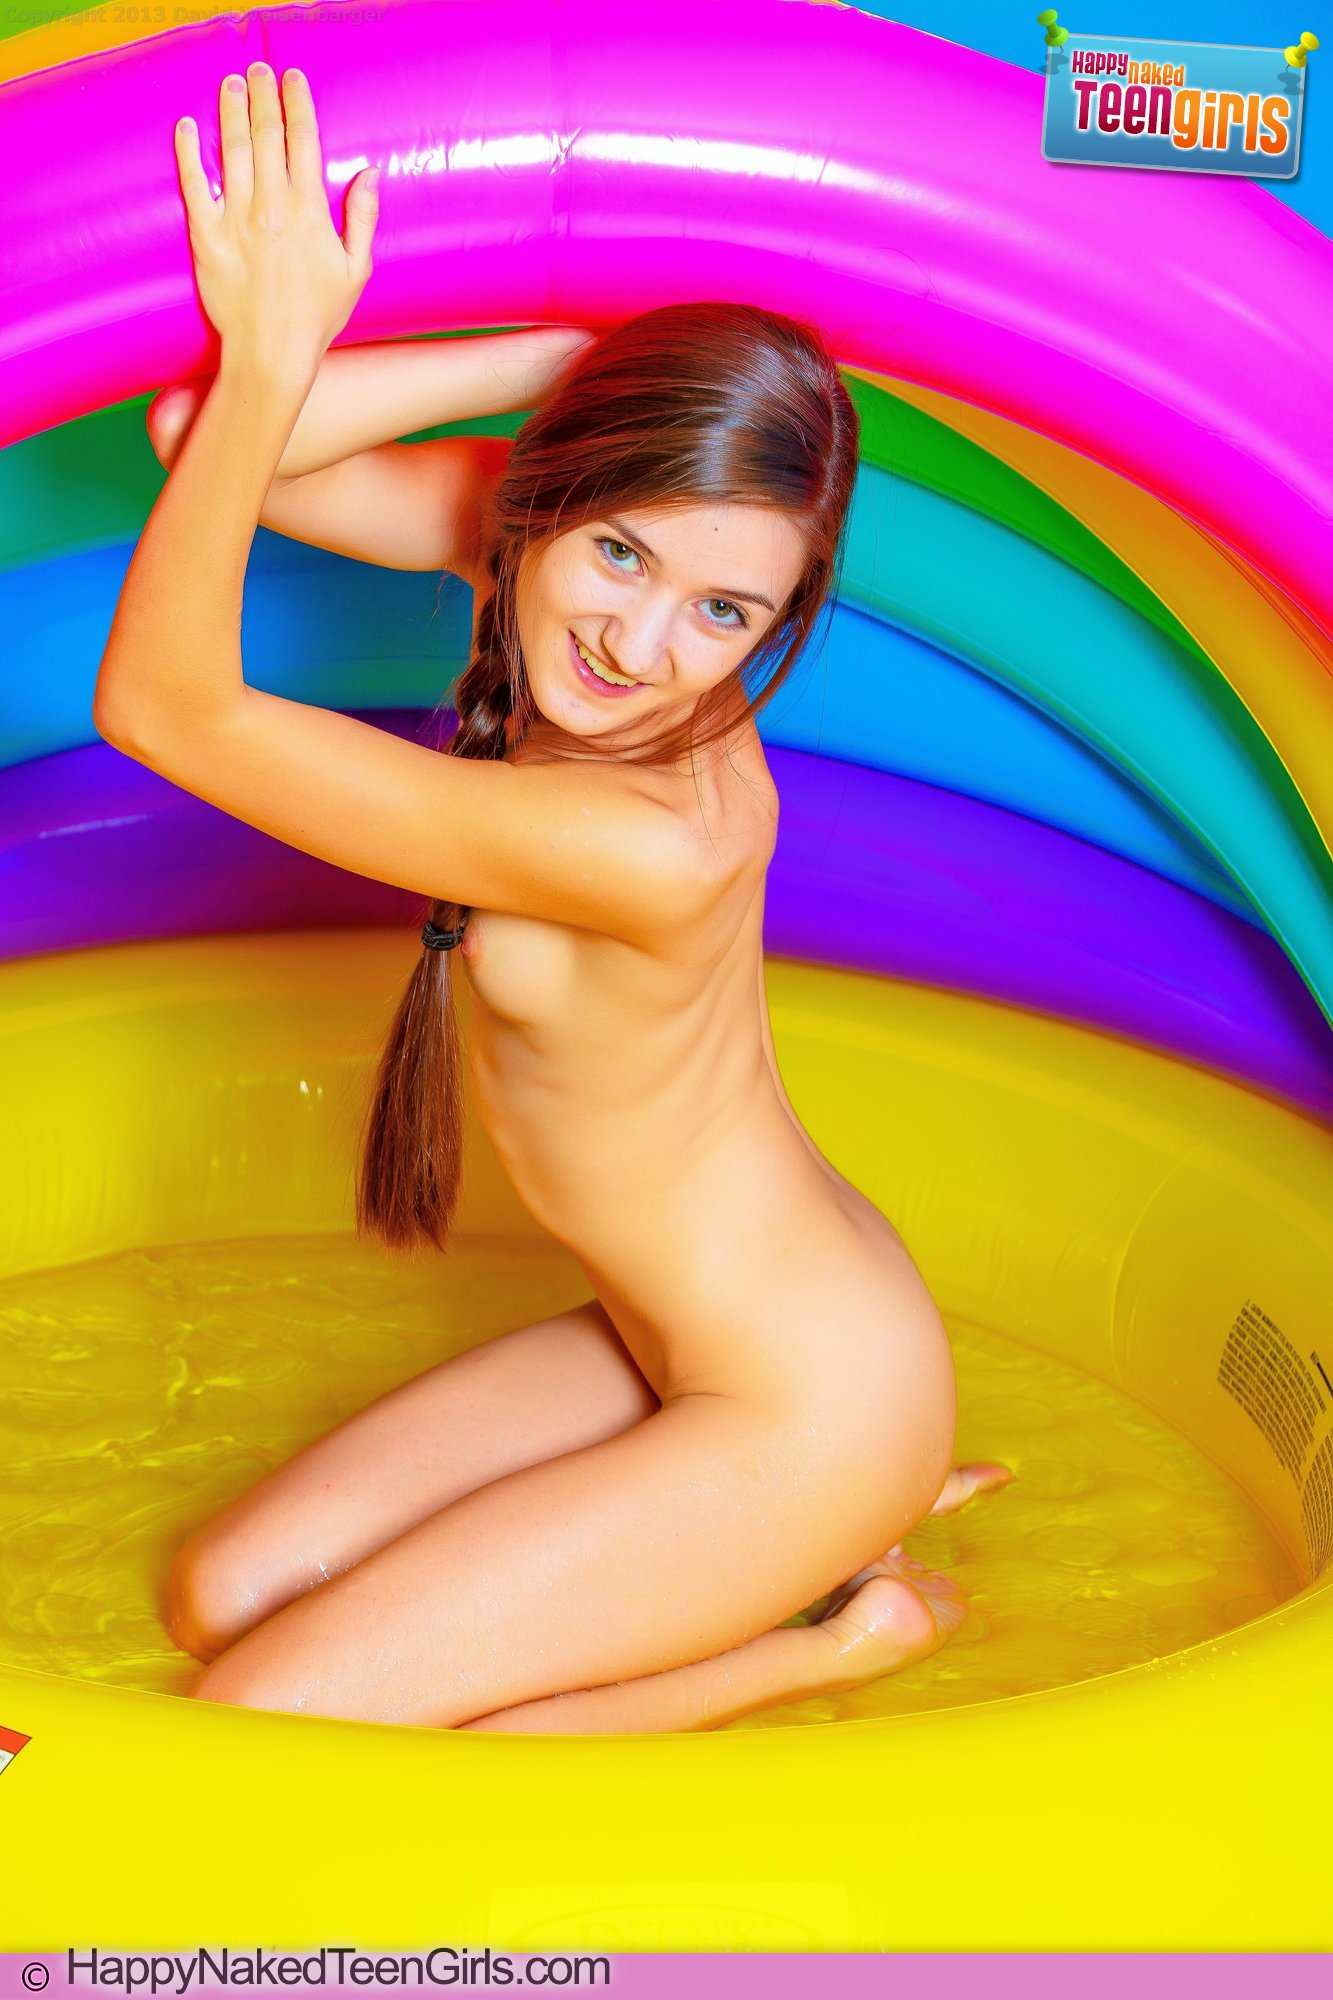 Omg This Feels Good - Claire - Happy Naked Teen Girls 63241-8669